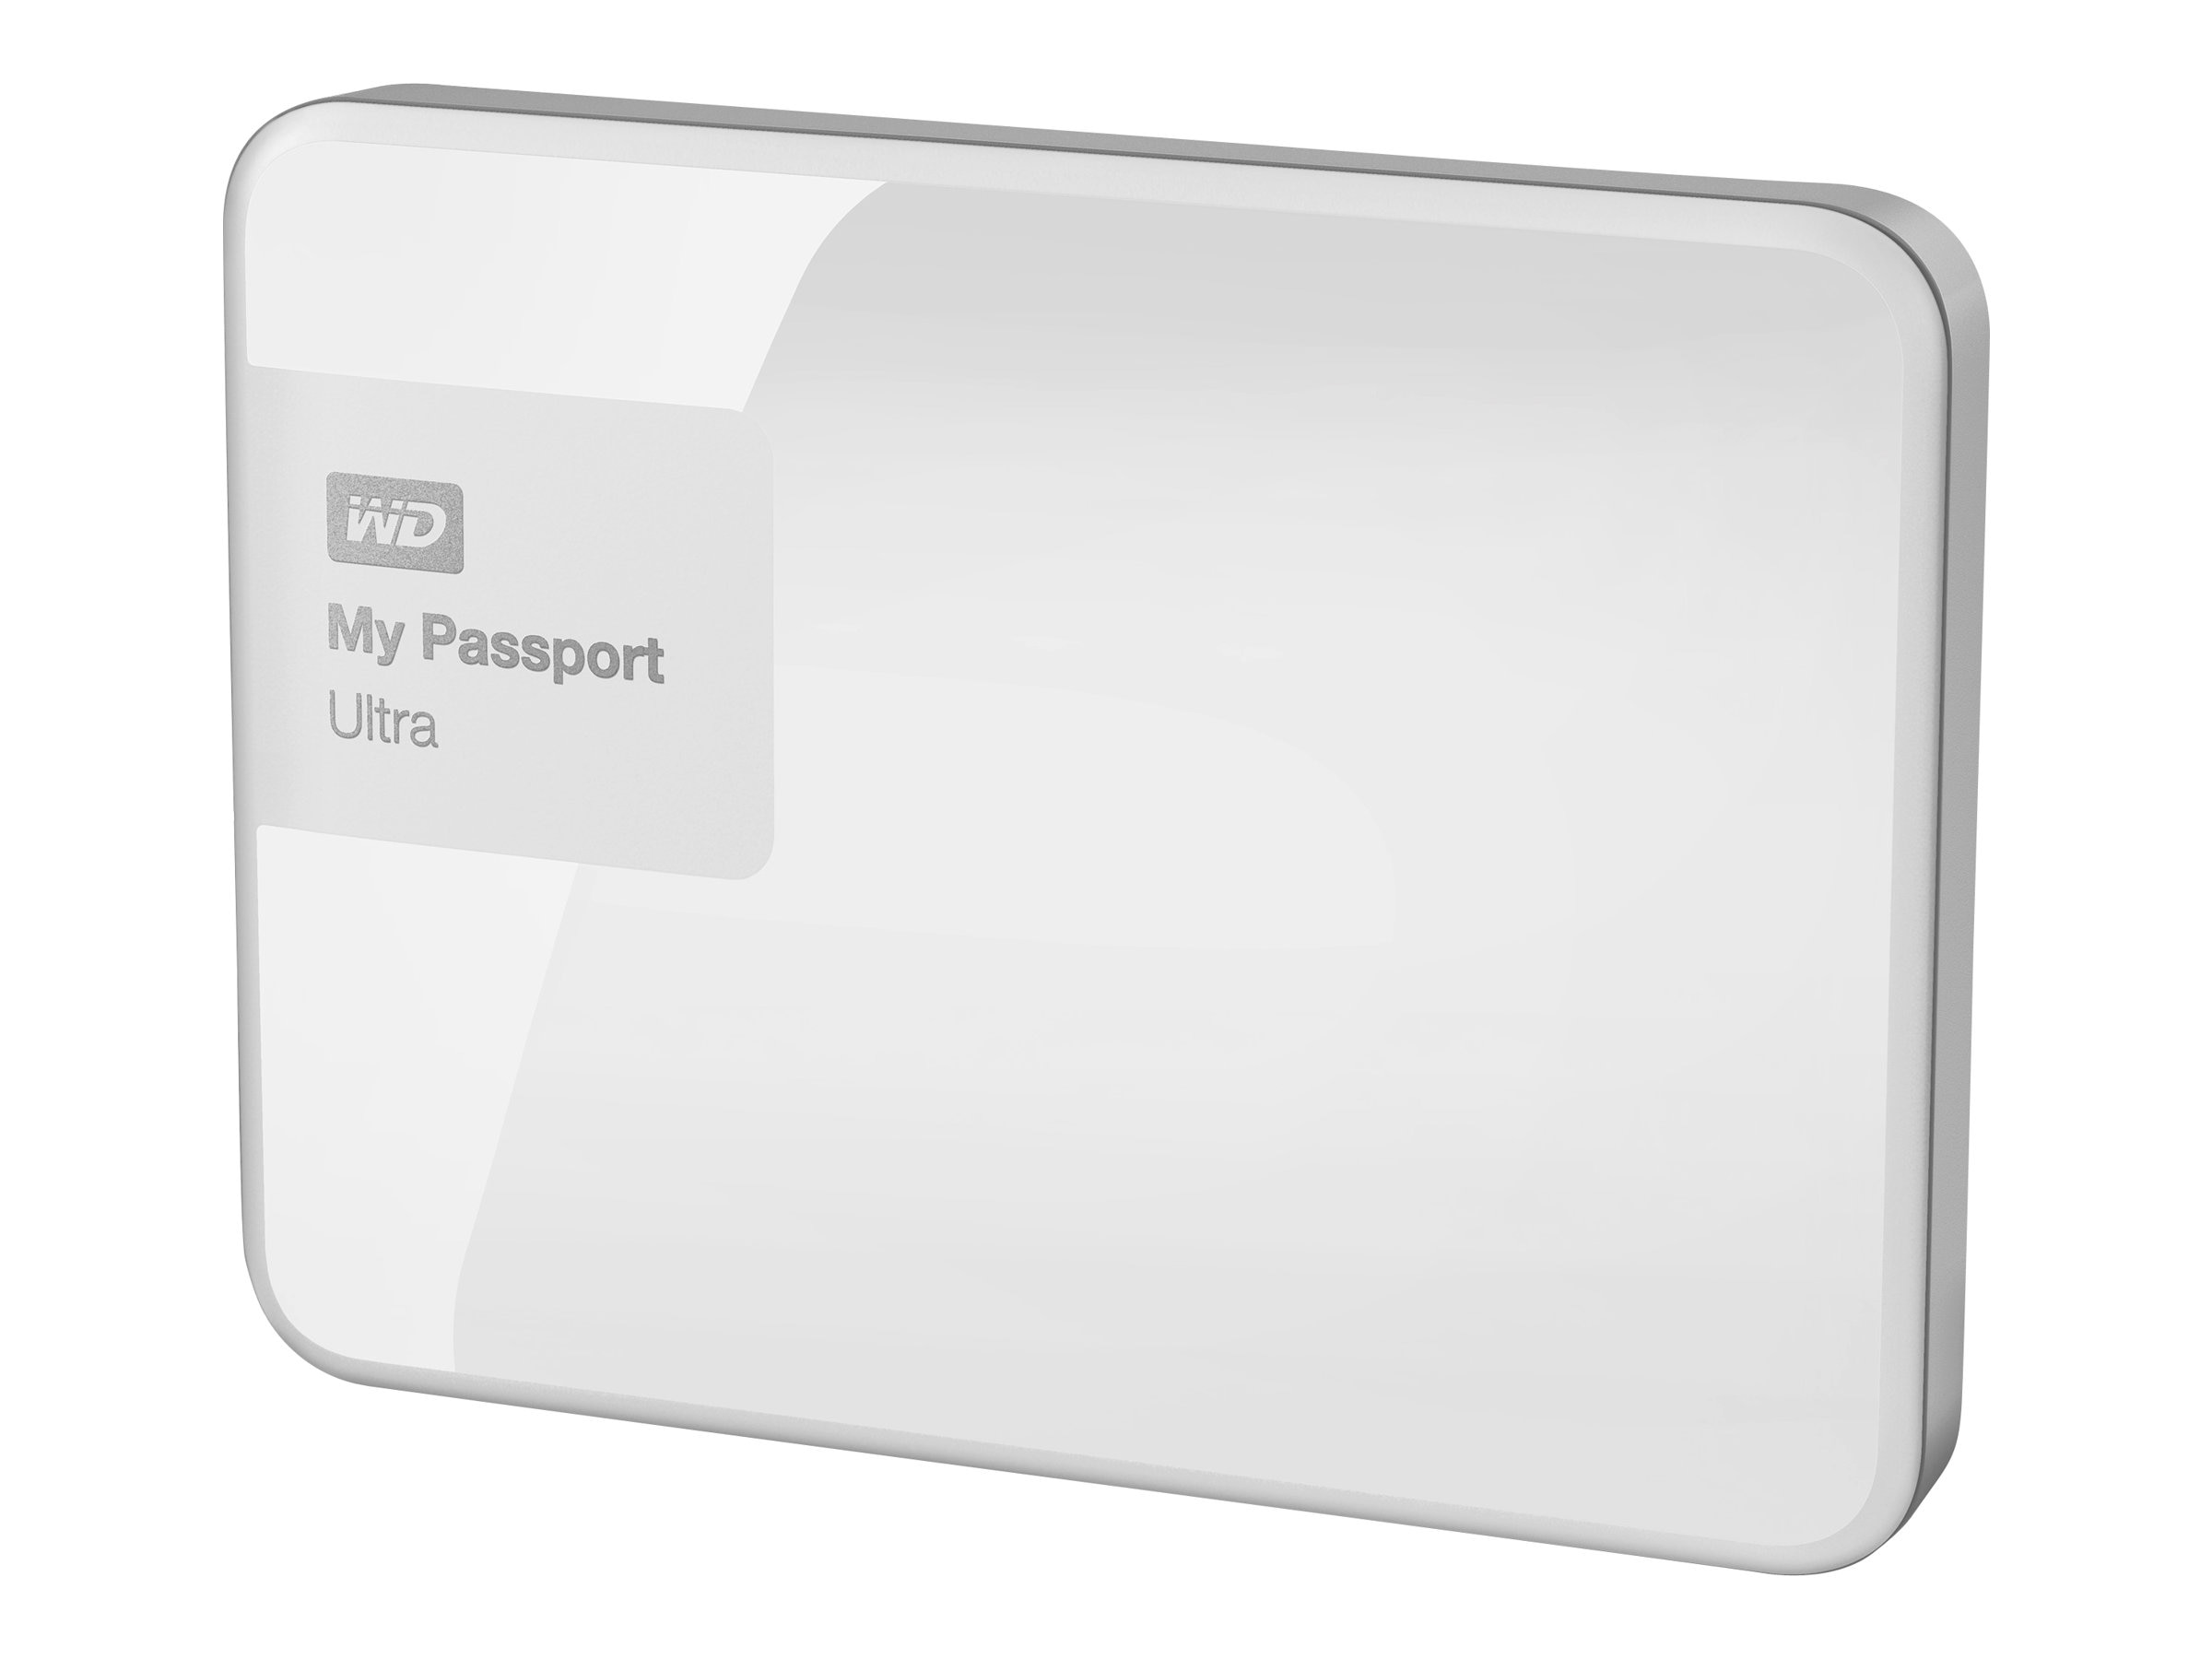 WD 2TB My Passport Ultra Portable Hard Drive - White